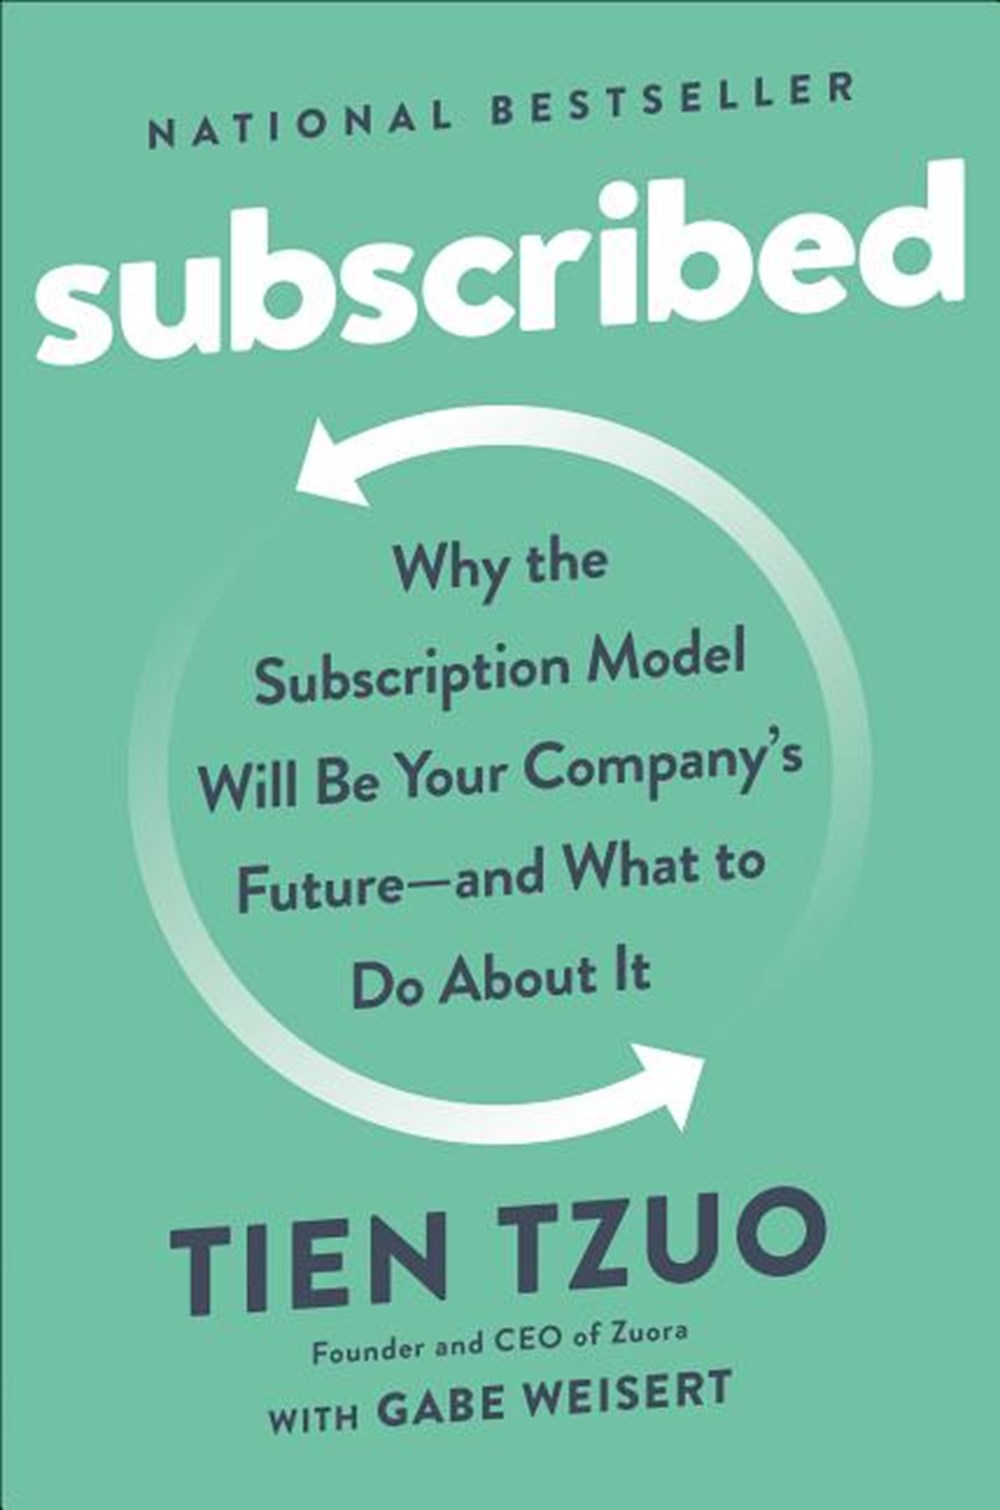 Subscribed Why the Subscription Model Will Be Your Company's Future - And What to Do about It